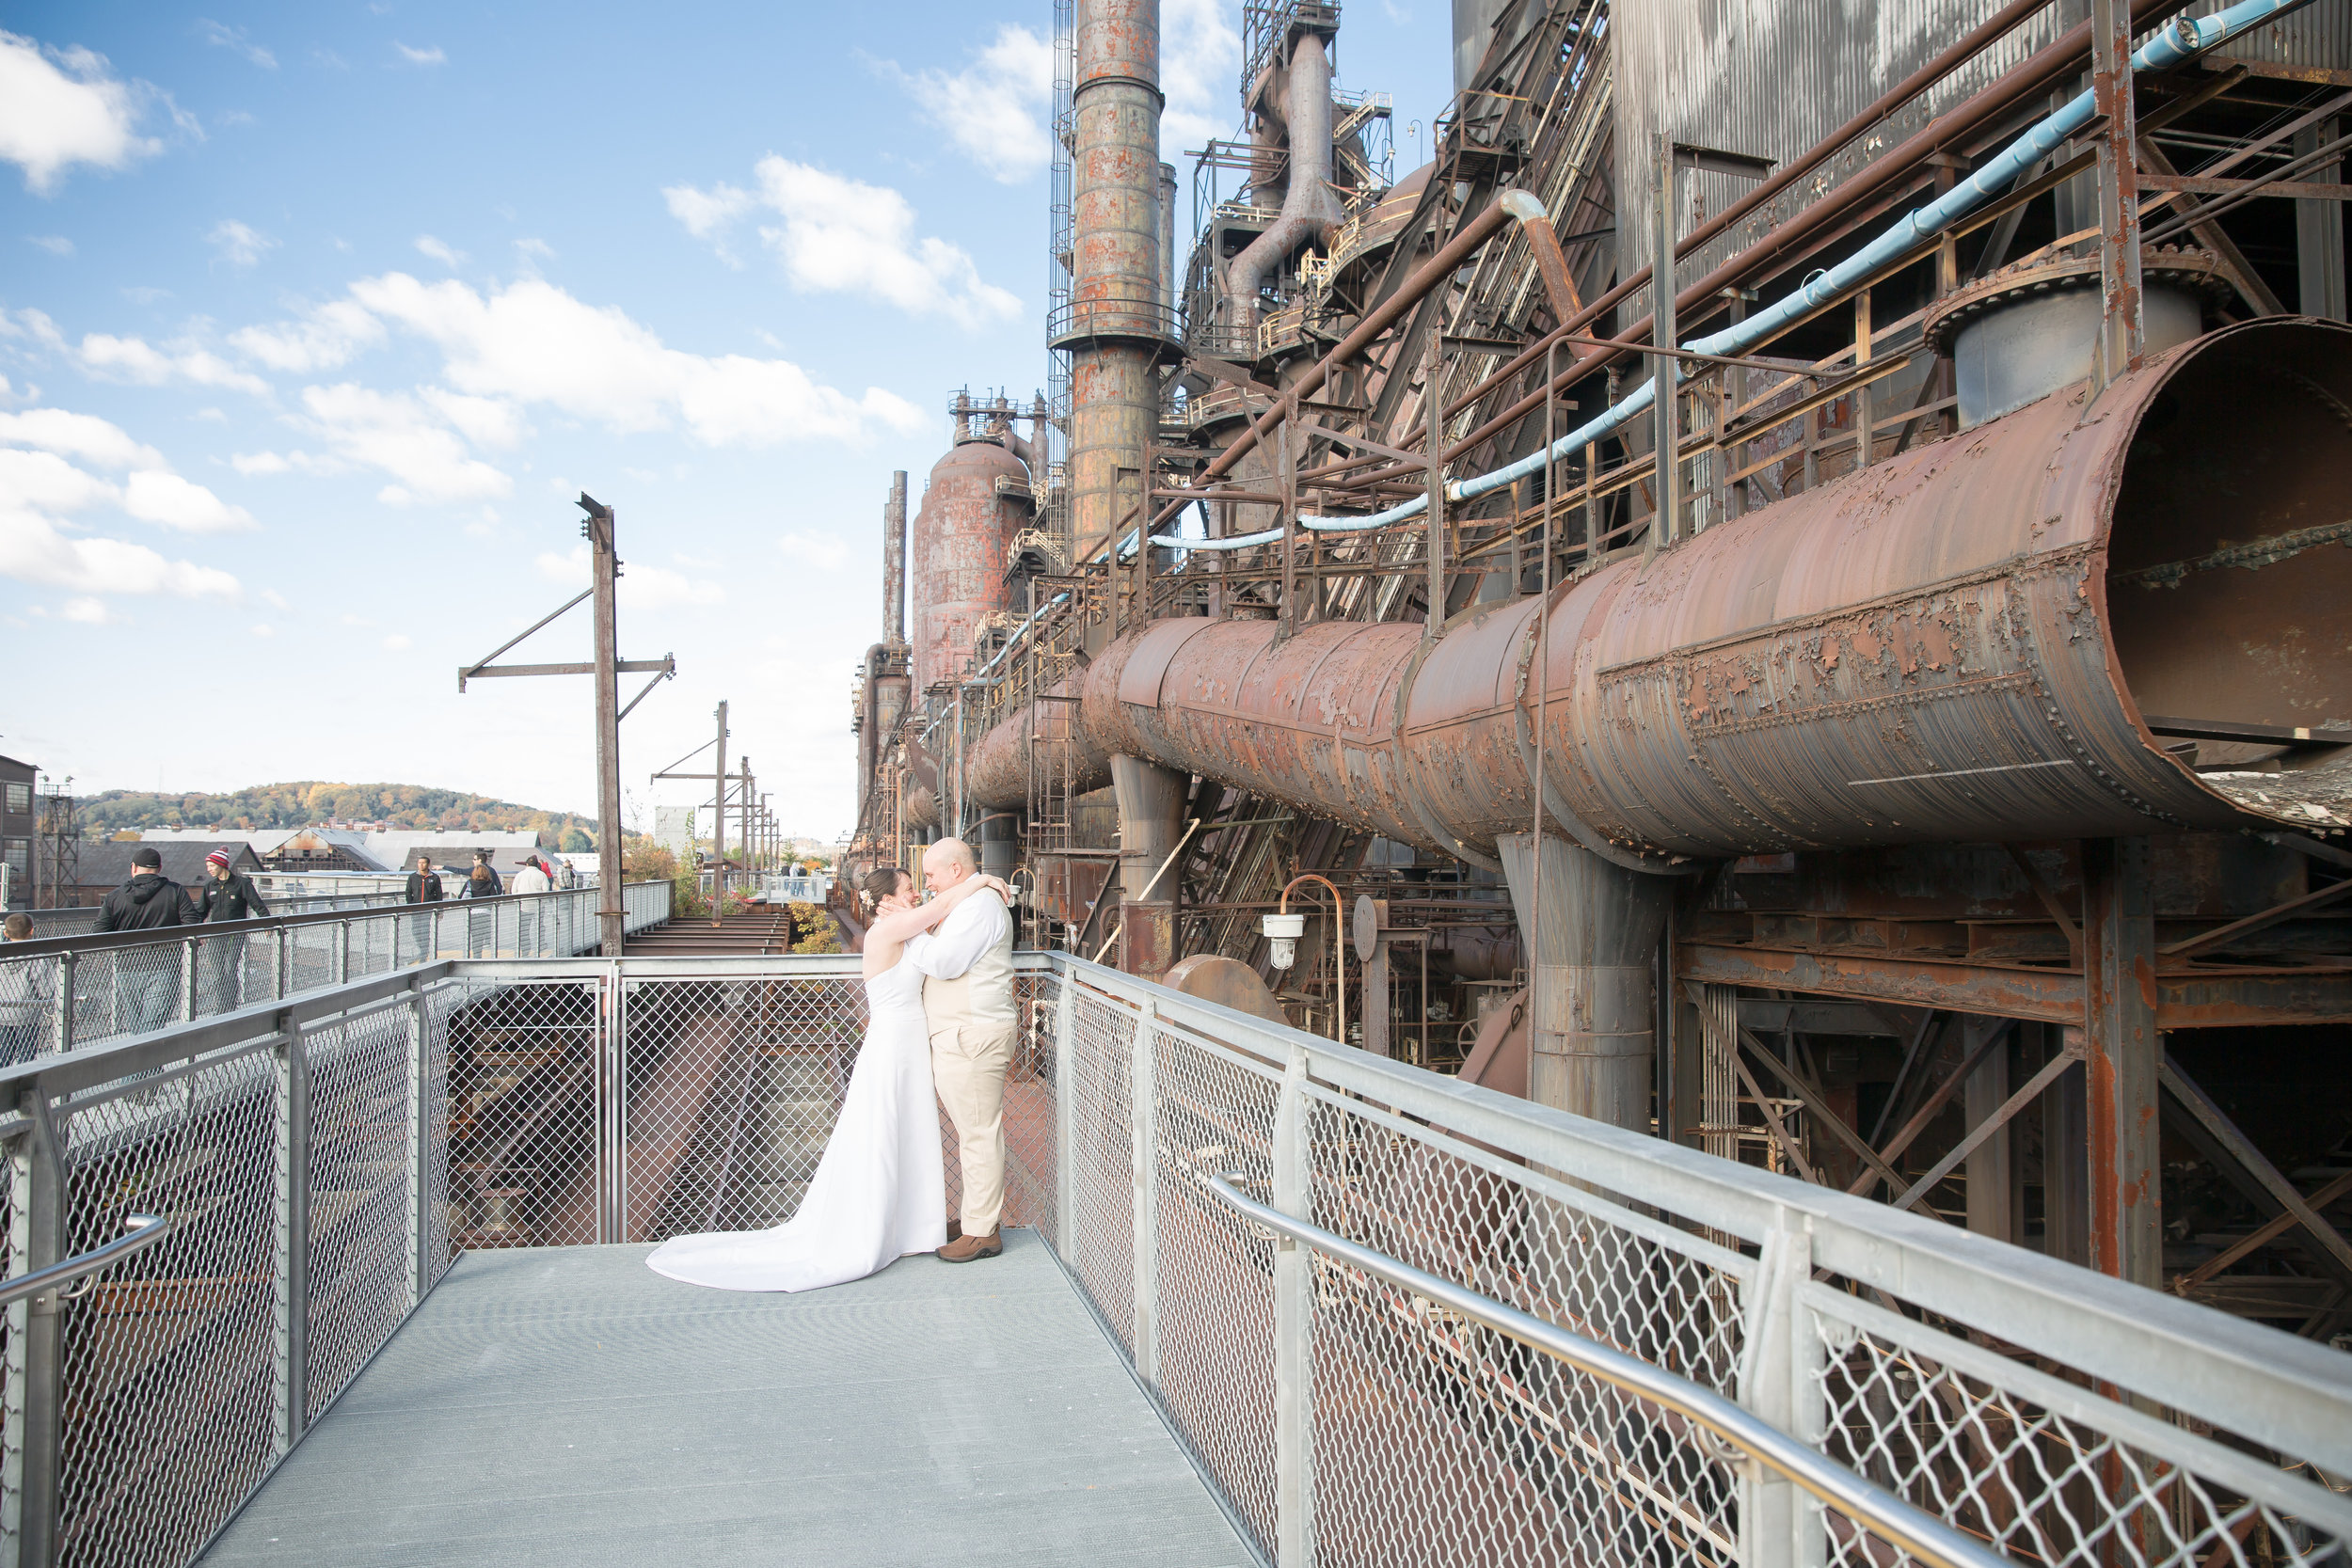 We are so blessed to live by such an amazing piece of history, Bethlehem Steel Stacks! Love Christine and Dom in this!